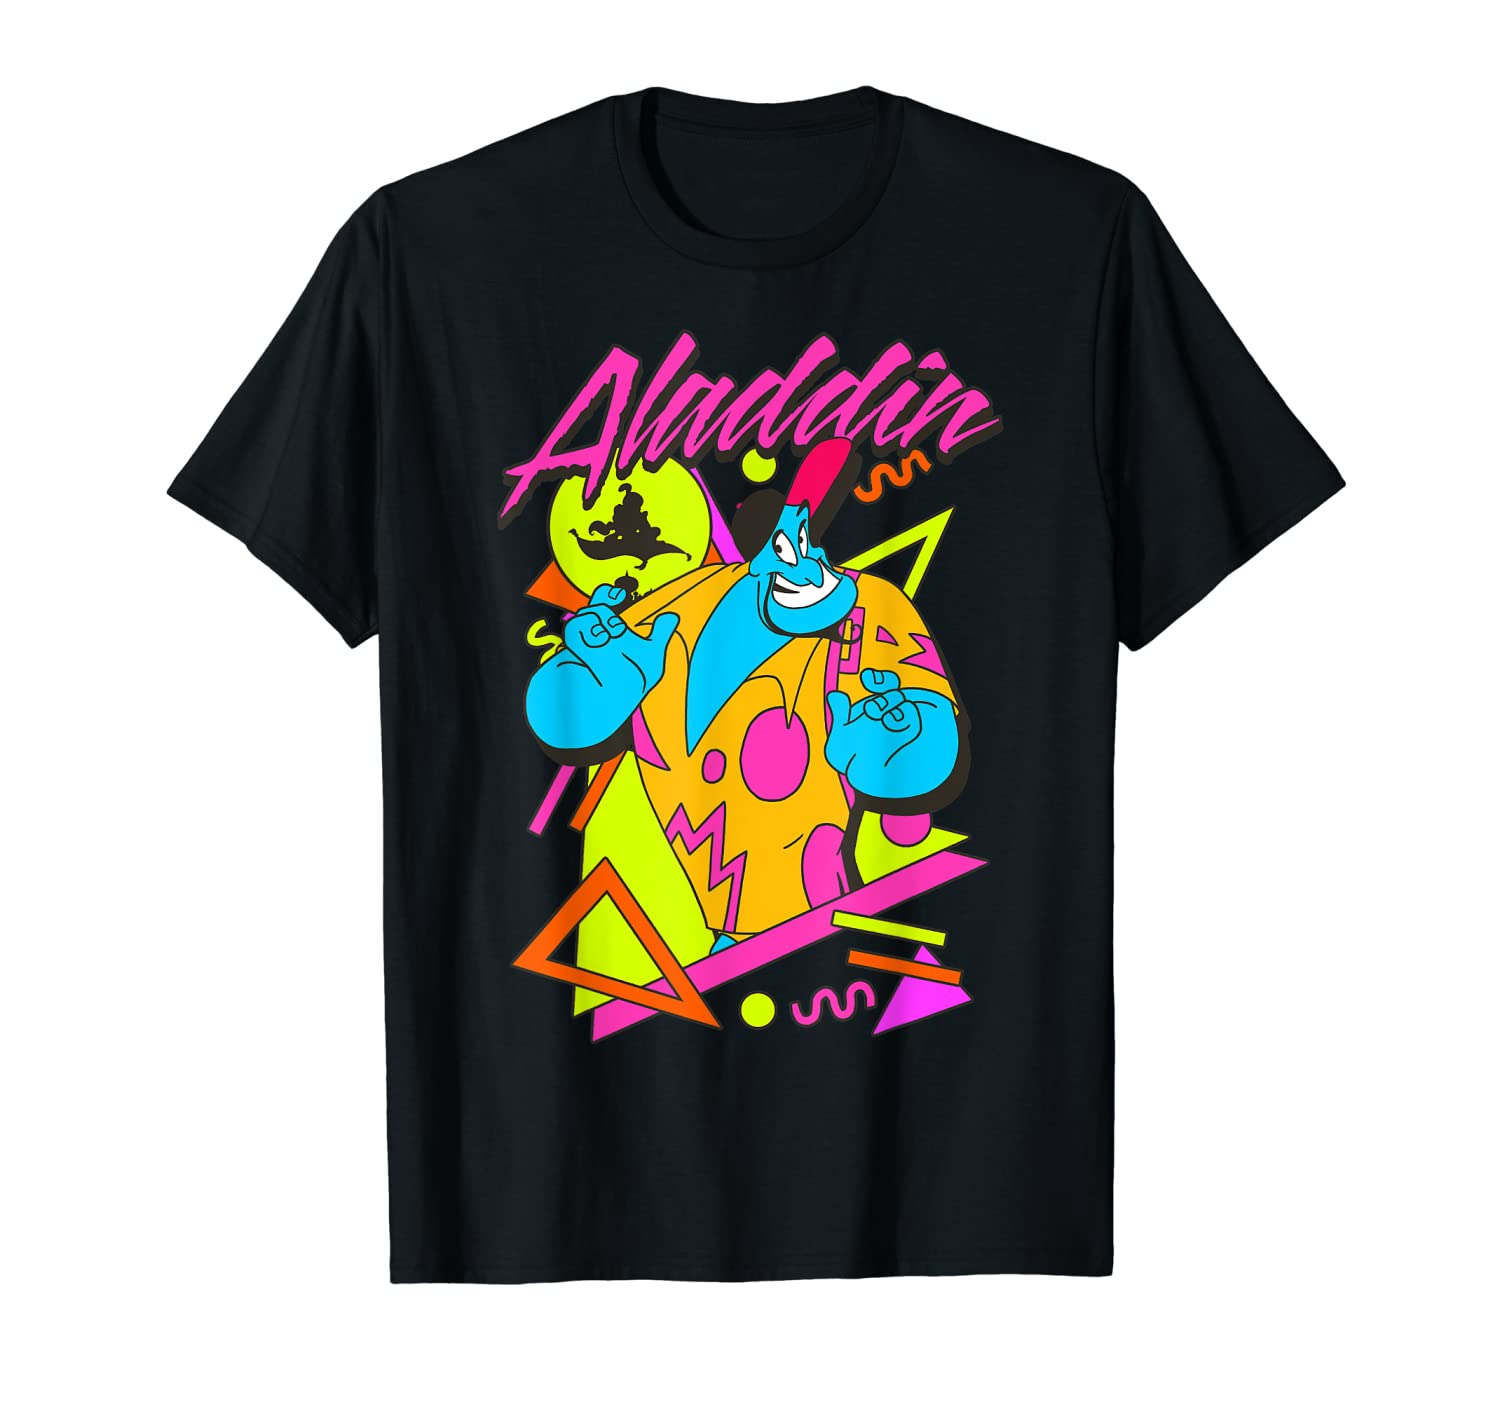 Disney Aladdin Genie In A Shirt Retro Abstract Graphic Tee